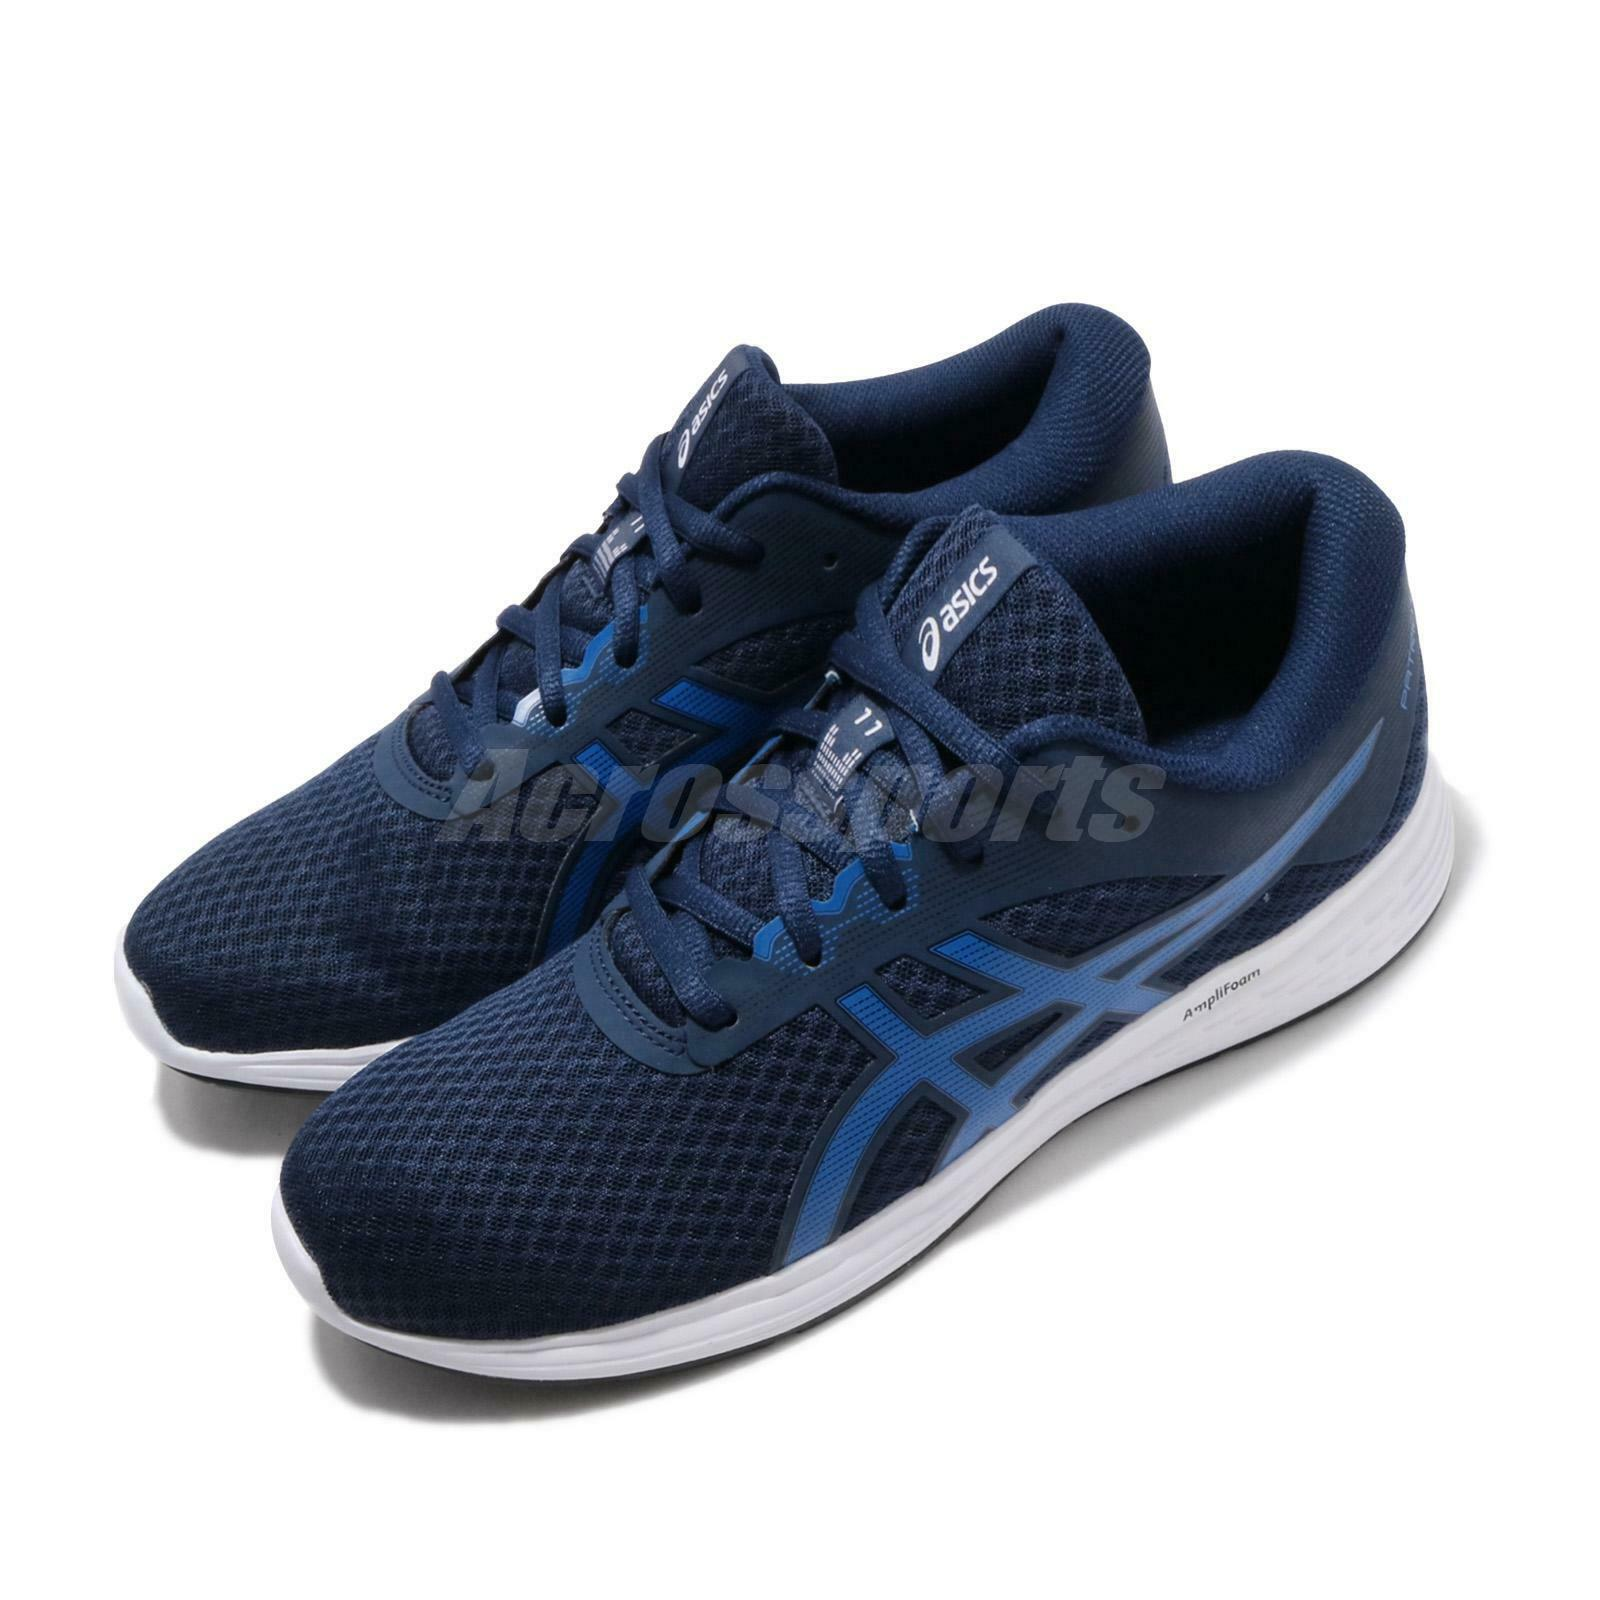 Asics Patriot 11 bluee Expanse Imperial Navy White Men  Running shoes 1011A568-400  credit guarantee